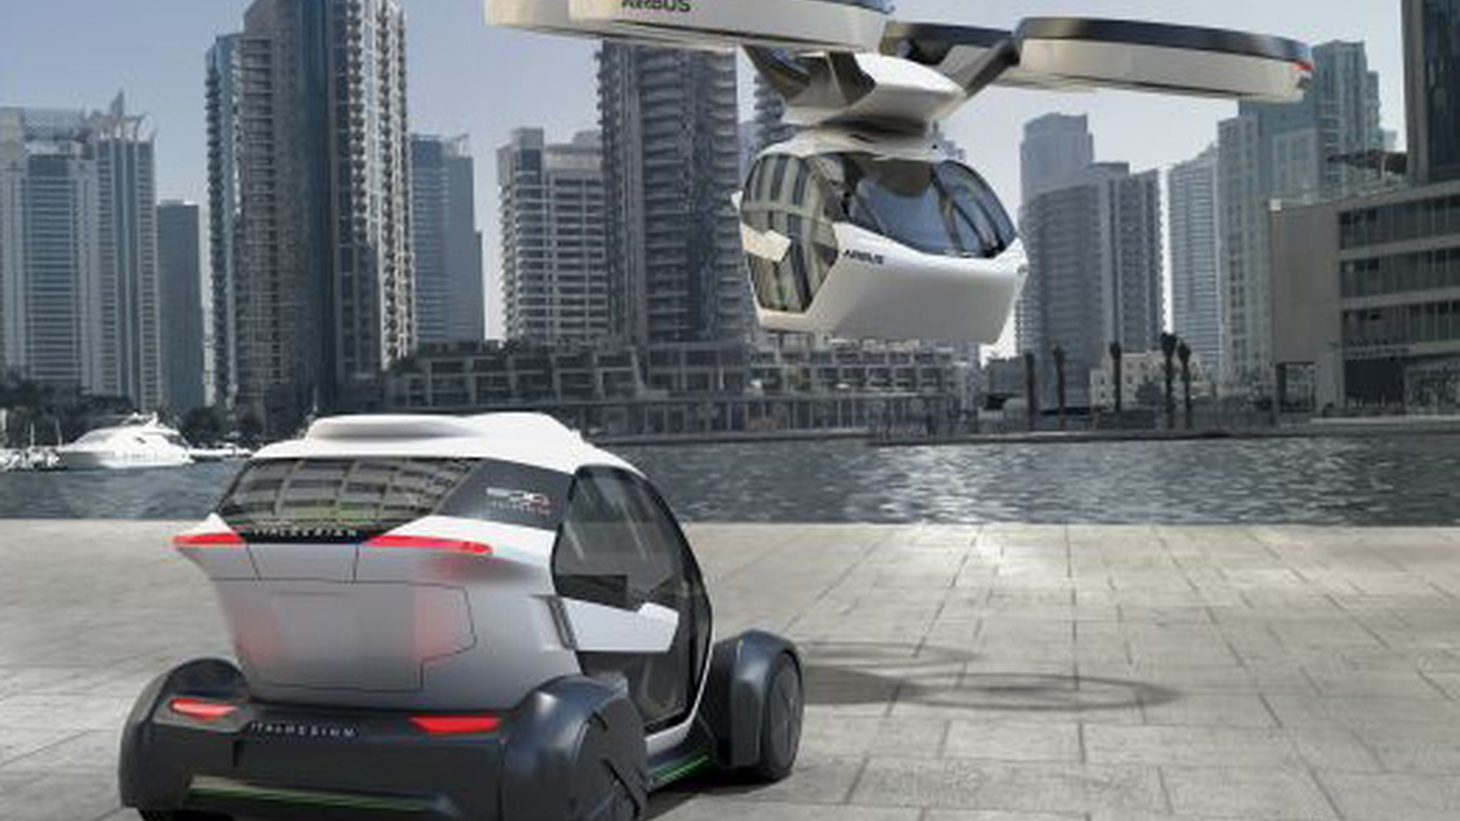 """KCRW's Steve Chiotakis sat down with car expert Tod Mesirow to talk about when we might see """"flying cars"""" in the skies."""